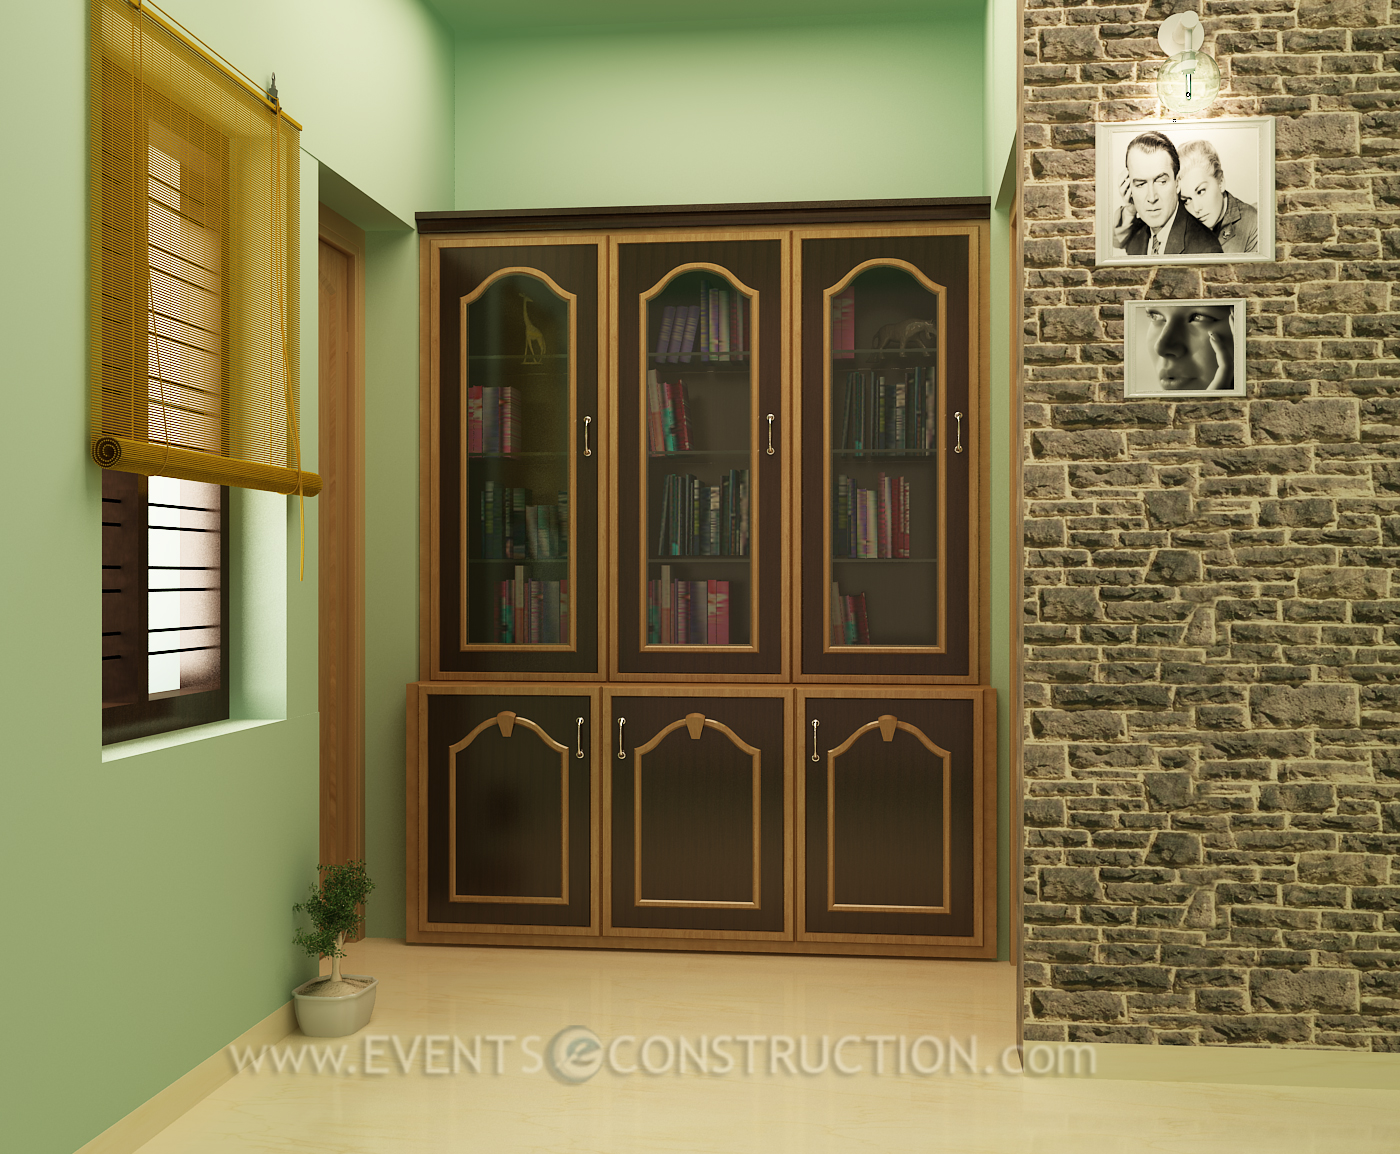 Evens Construction Interiors